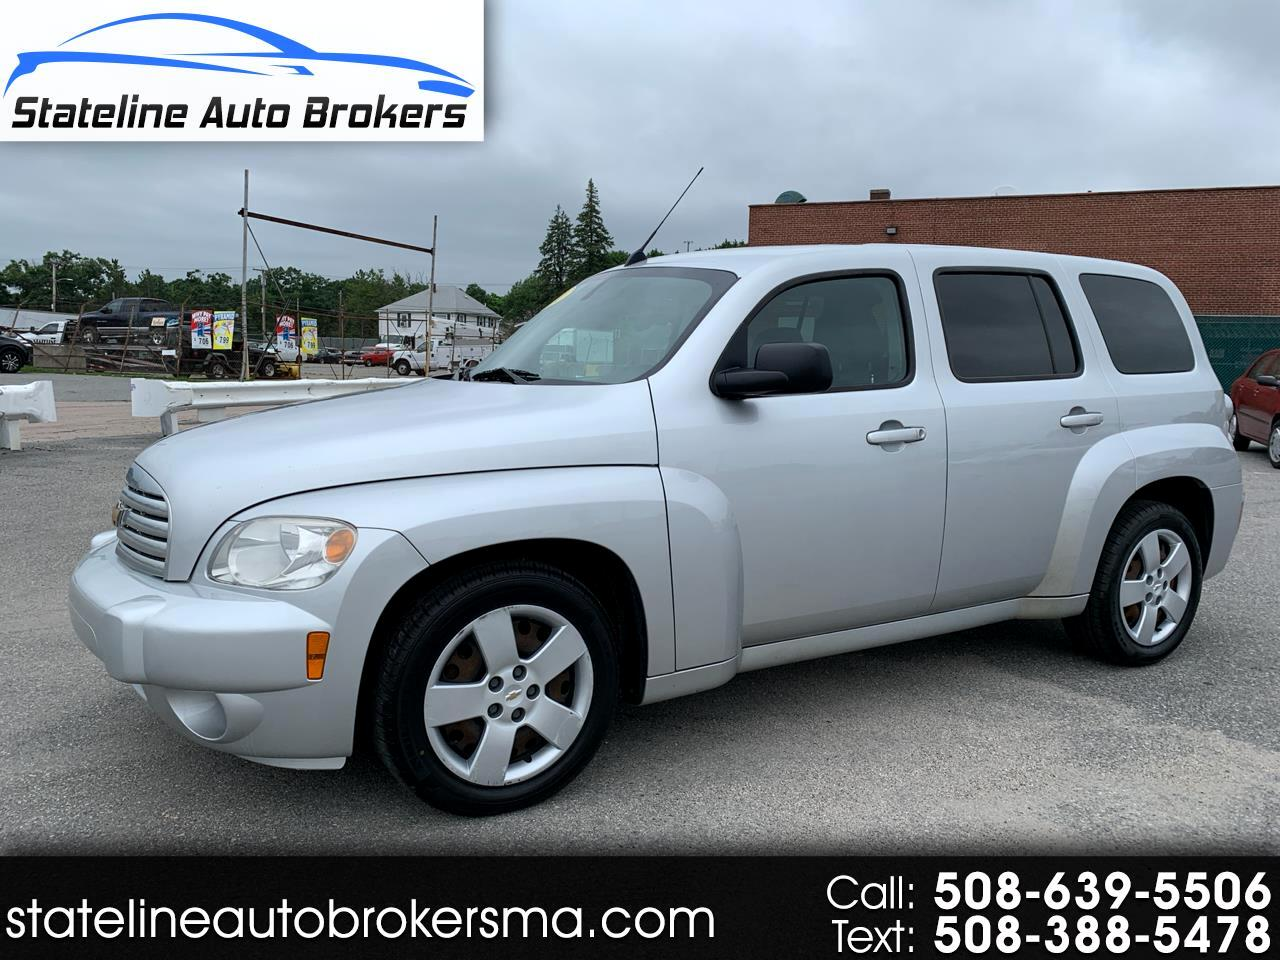 Used 2011 Chevrolet Hhr Fwd 4dr Ls For Sale In Attleboro Ma 02703